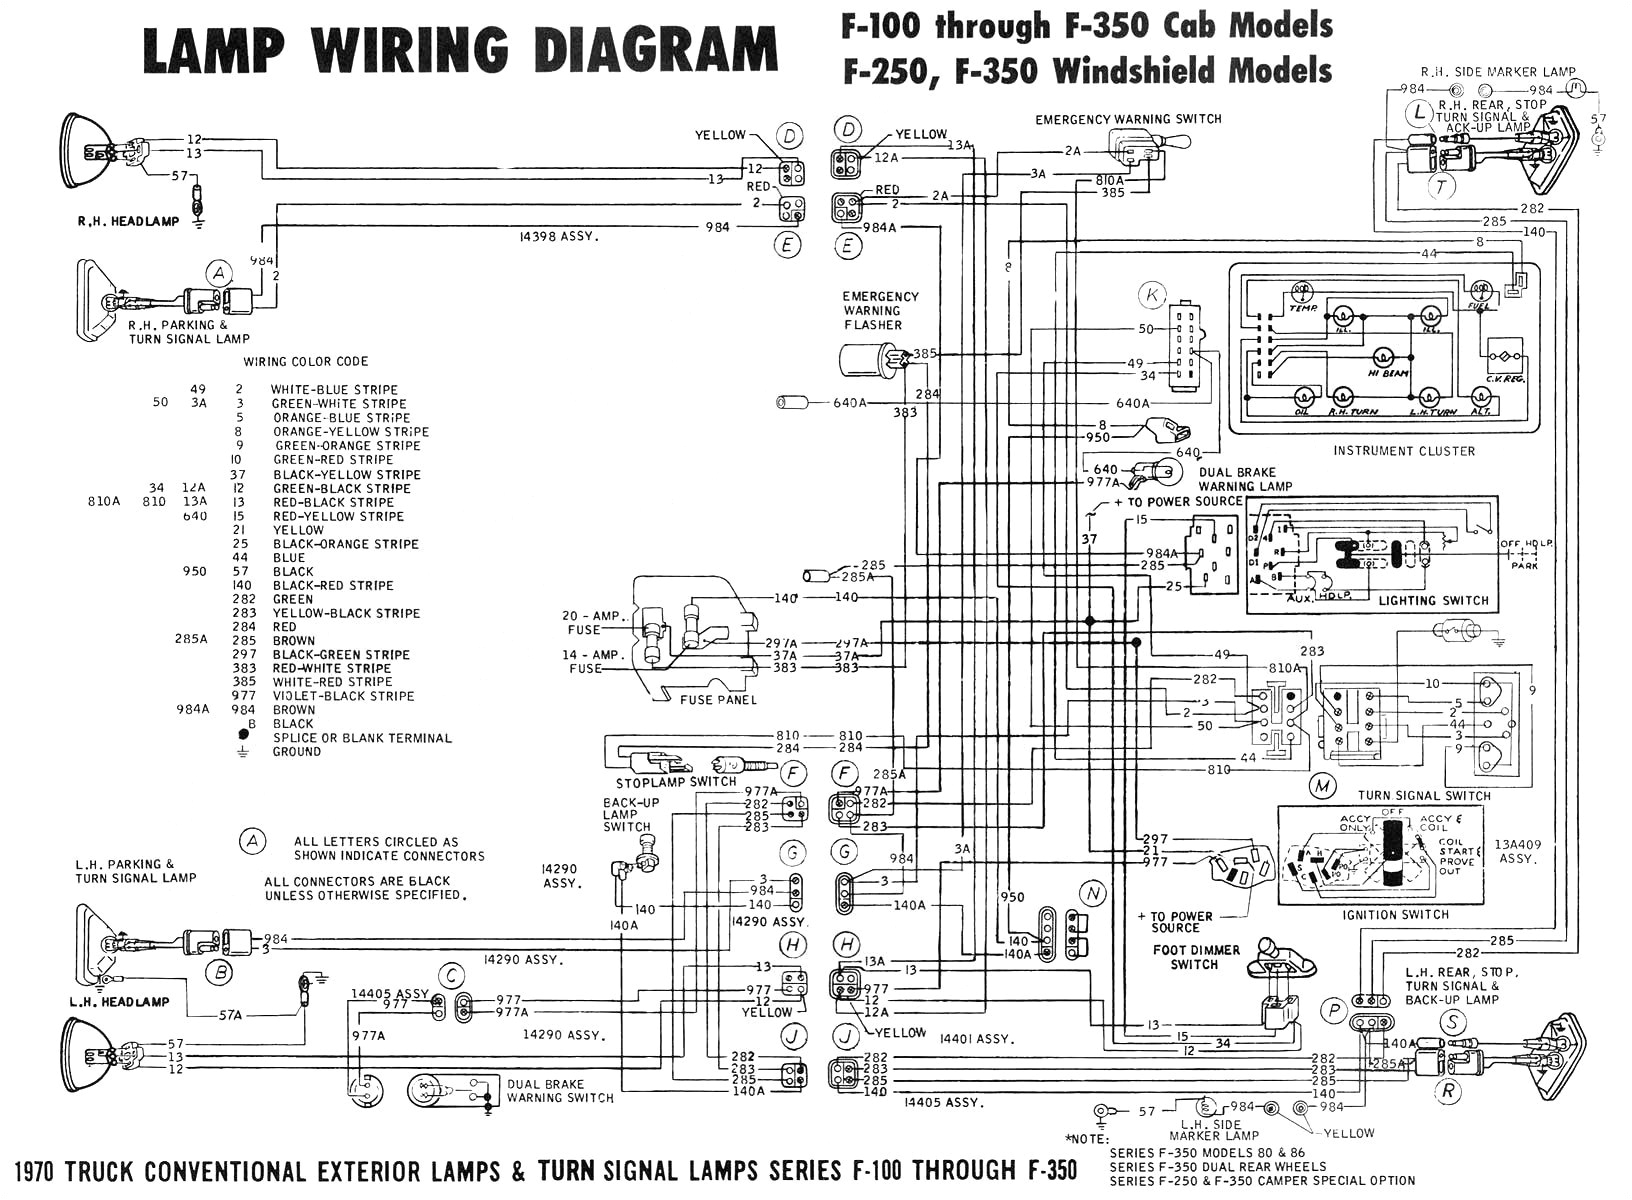 pin to 6 pin trailer wiring lzk gallery wiring diagram view 120v led light bulb circuit diagram lzk gallery